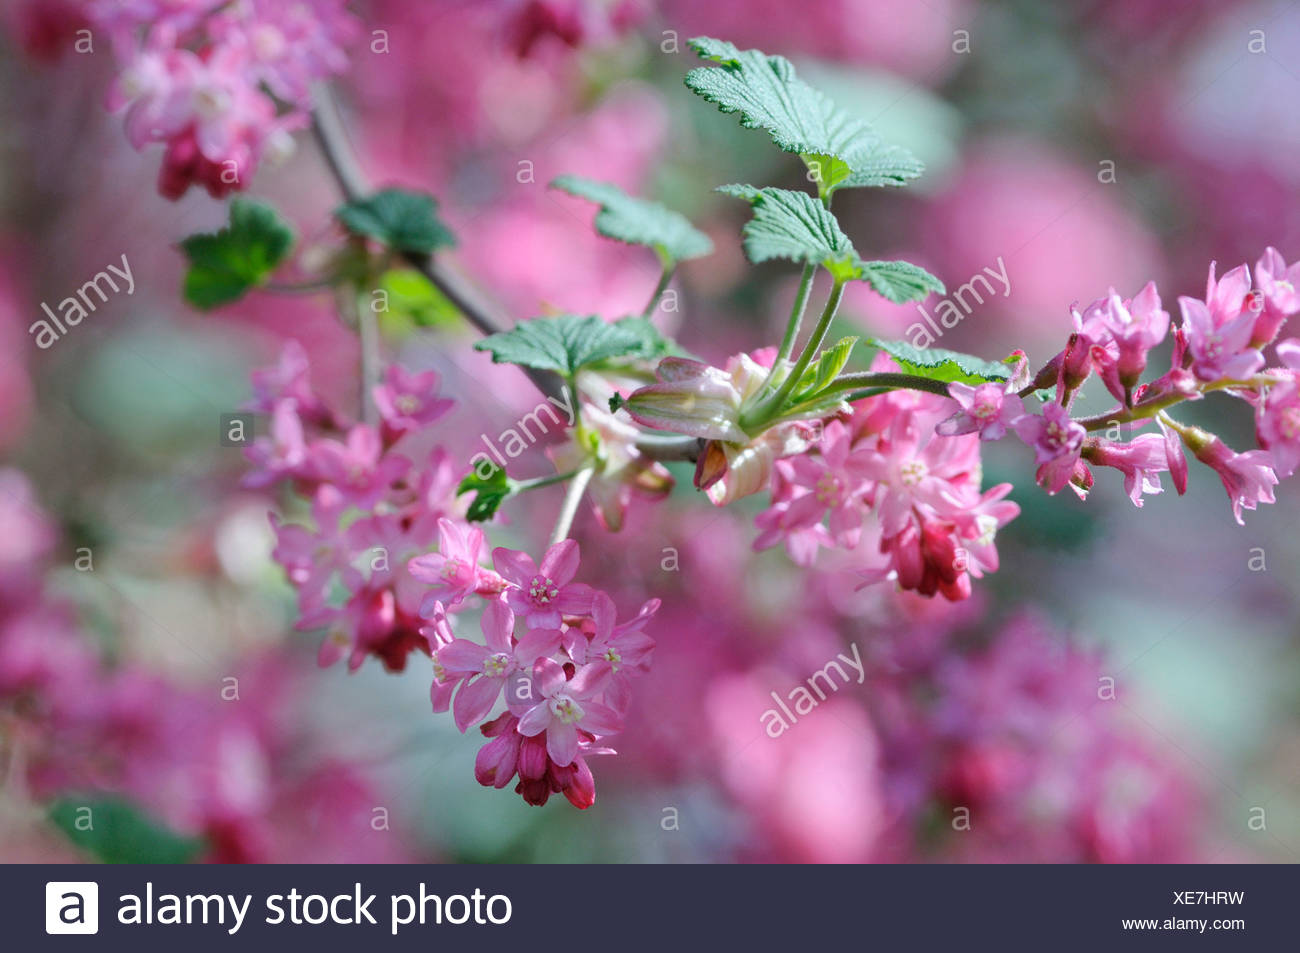 Ribes sanguineum flowering currant in blossom with pink flowers ribes sanguineum flowering currant in blossom with pink flowers mightylinksfo